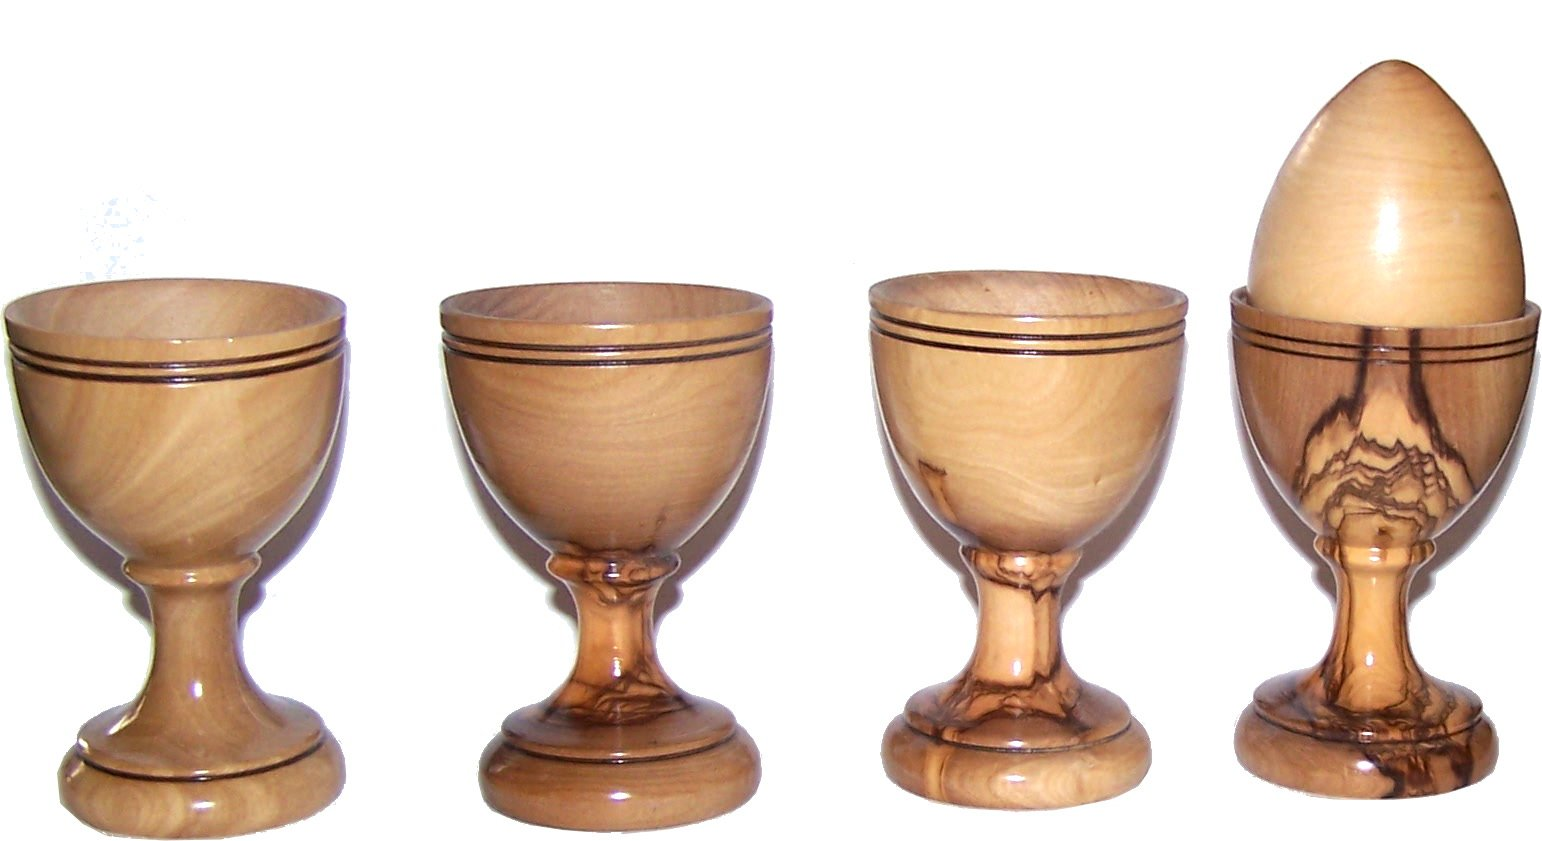 Four olive wood Communion/Egg Cups - great style - Asfour outlet brand - Set of 4